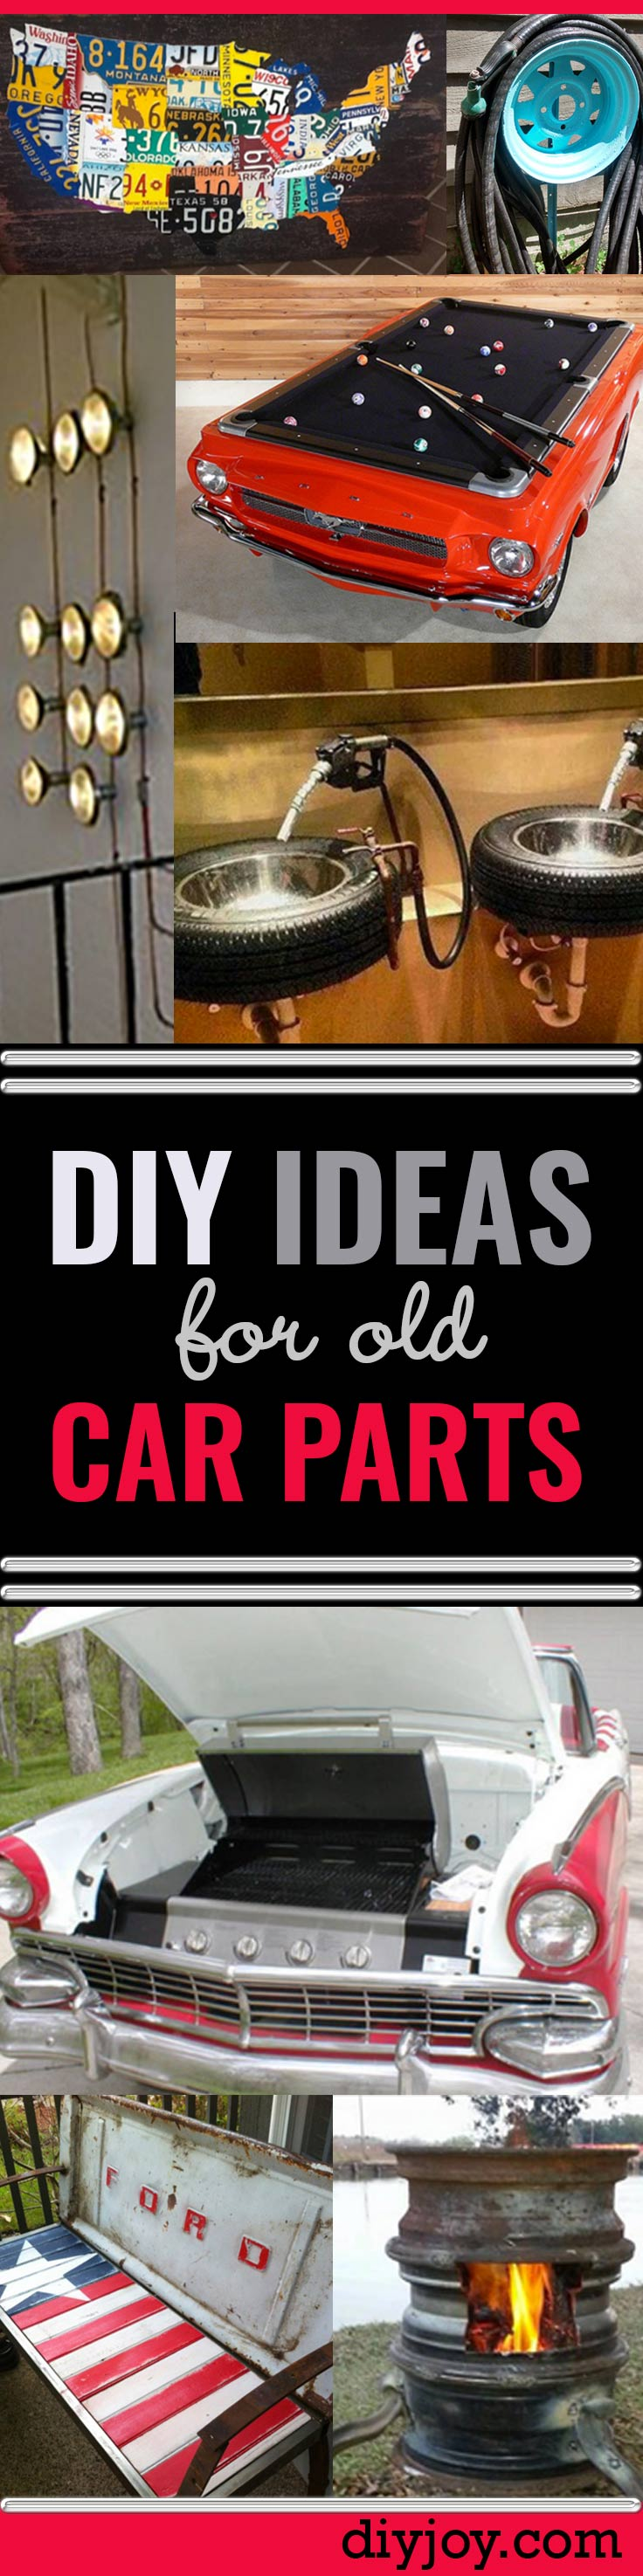 diy ideas car parts - DIY Home Decor, Furniture Projects, Signs and Seating Made From Tires, Bumpers and Old Car Parts - DIY Ideas Using Old Car Parts - DIY Projects and Fun Crafts for Men